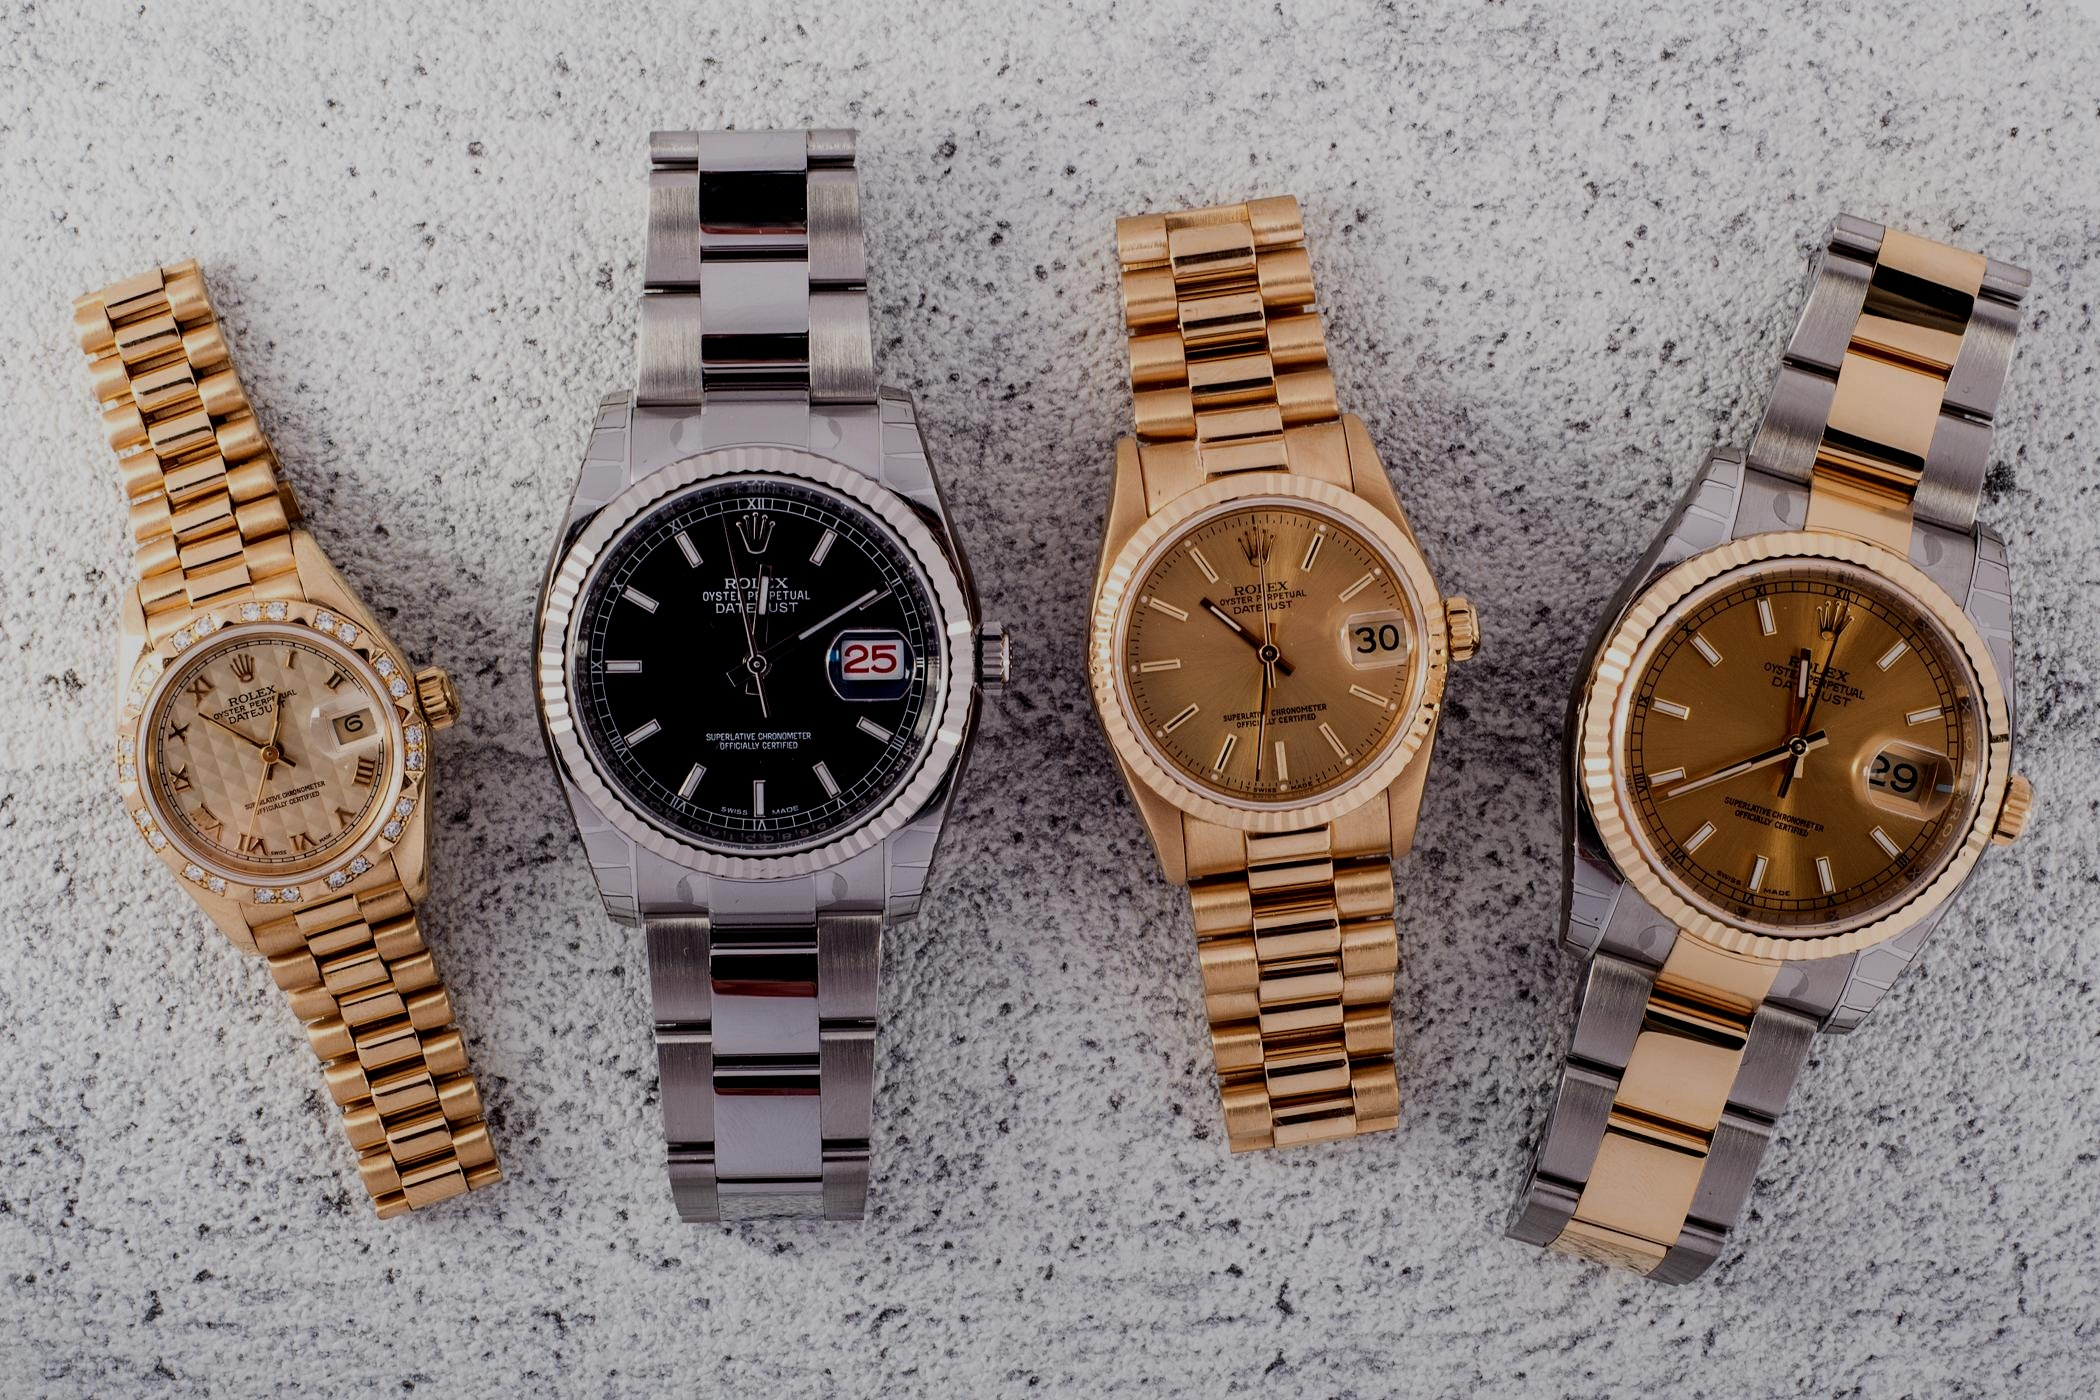 Unsere Rolex Datejust Favoriten